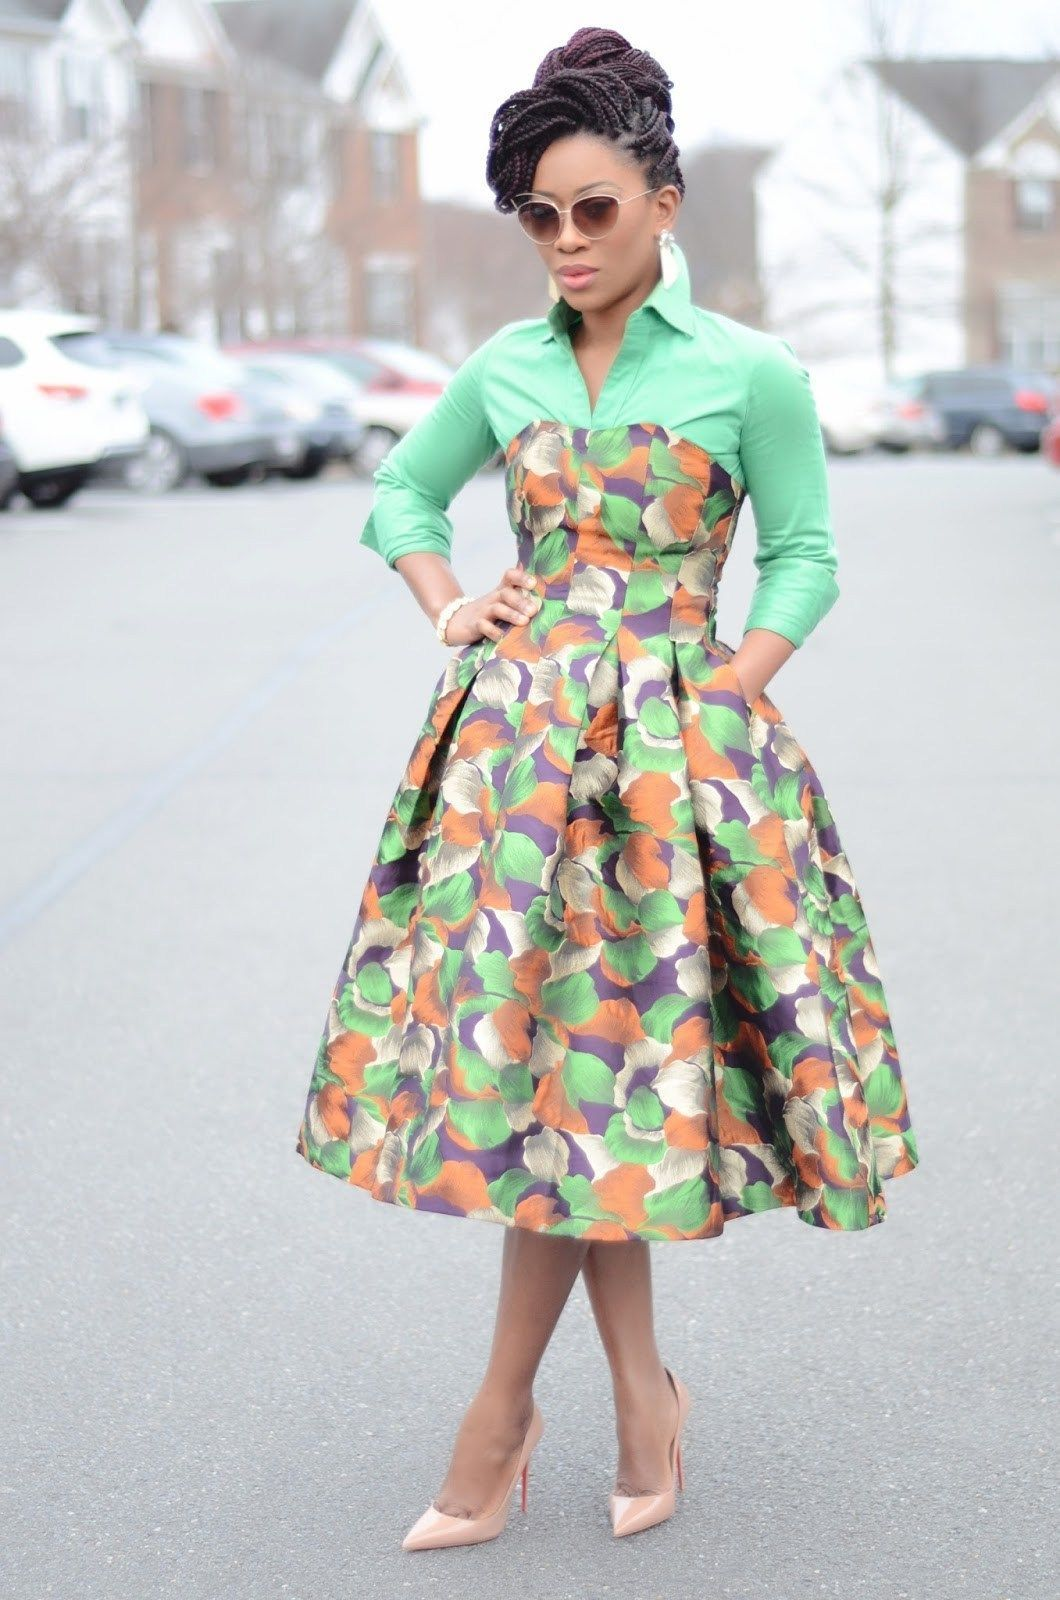 25 Fashion Fabulous African Style Outfits for Work #africanstyleclothing 25 Fashion Fabulous African Style Outfits for Work - African Vibes Magazine #afrikanischerdruck